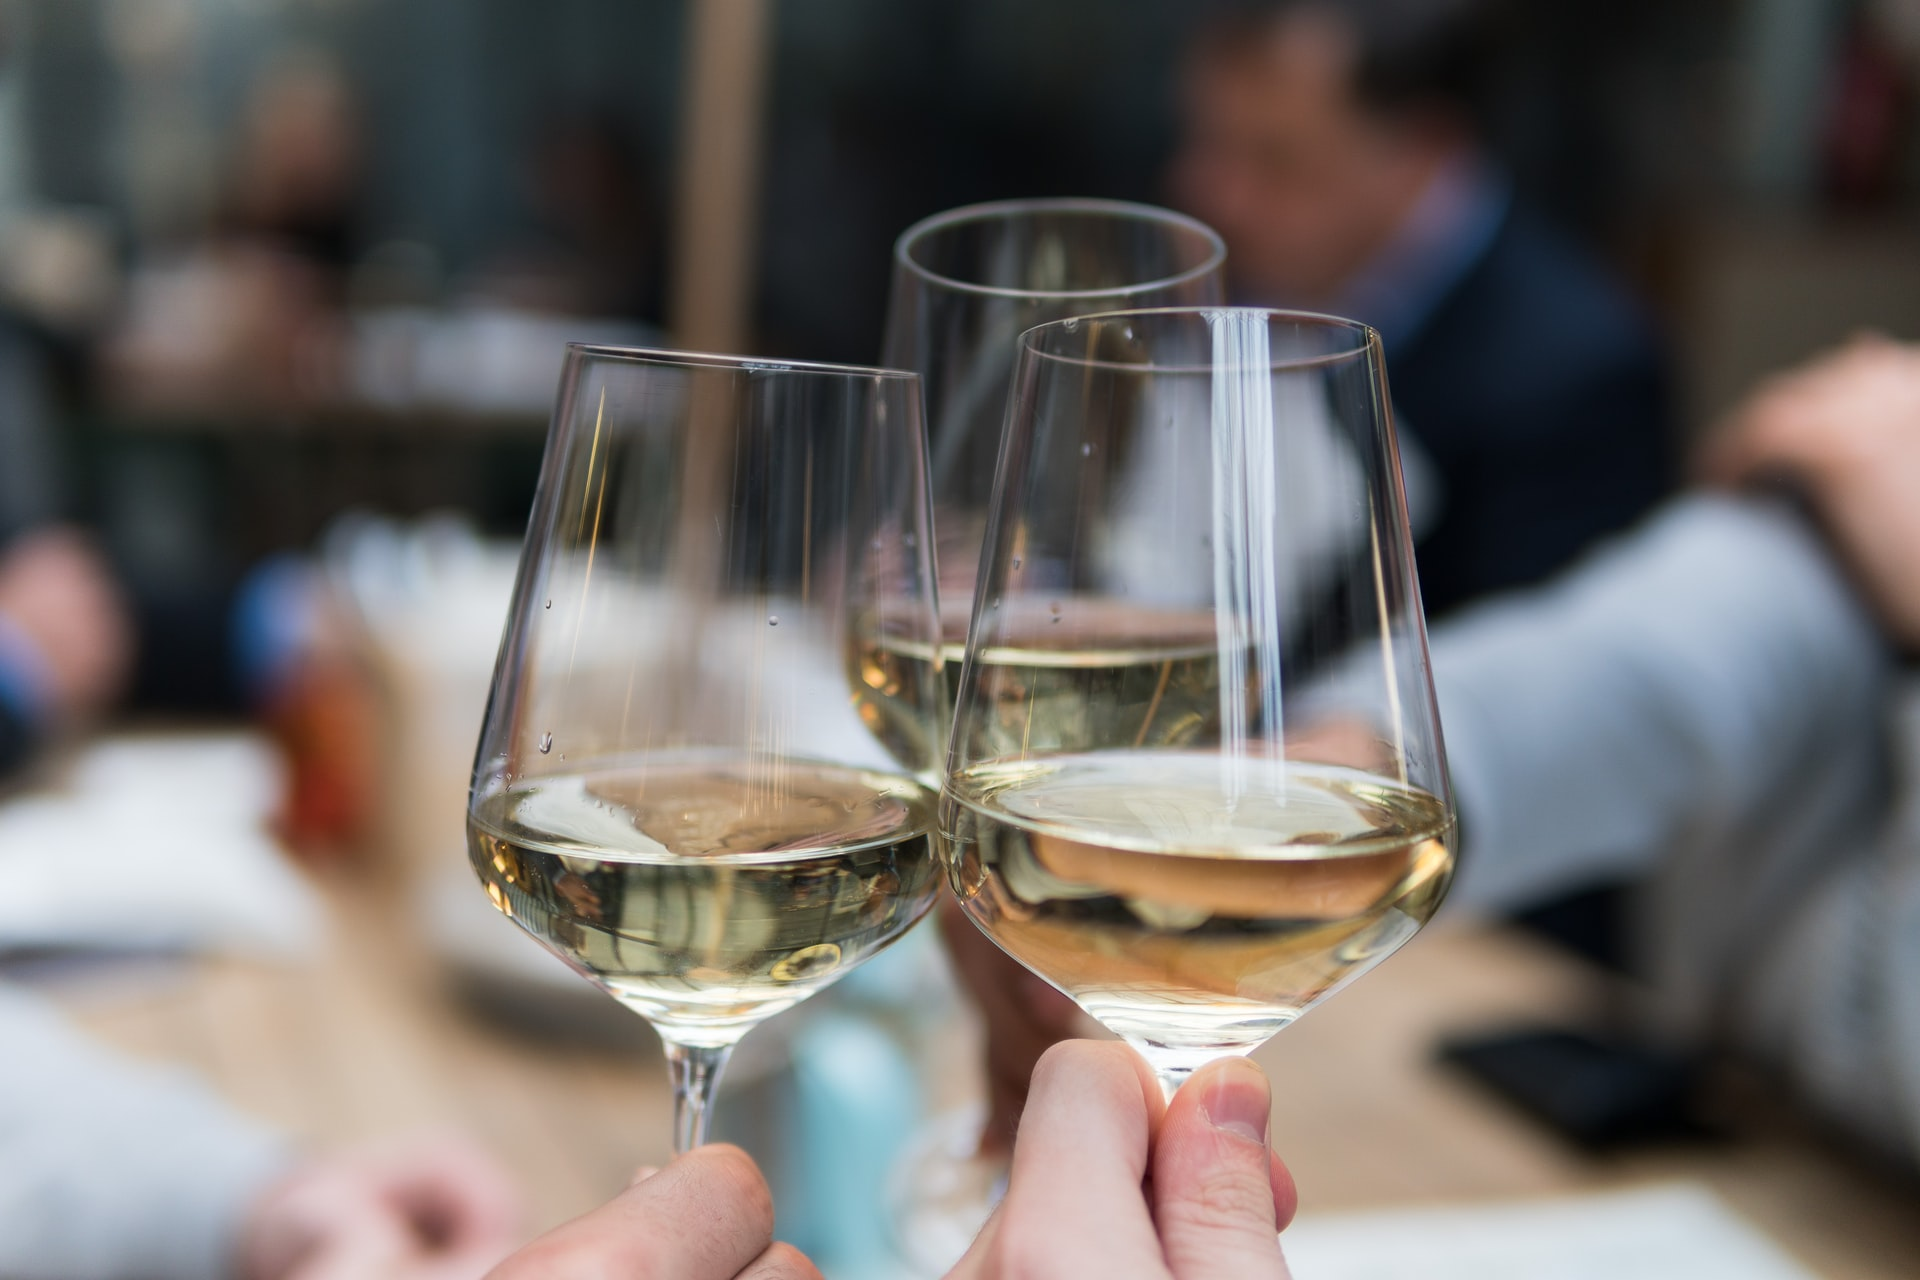 thumbnail image for blog Sip and Swish at The Pursuit Wine Bar & Kitchen